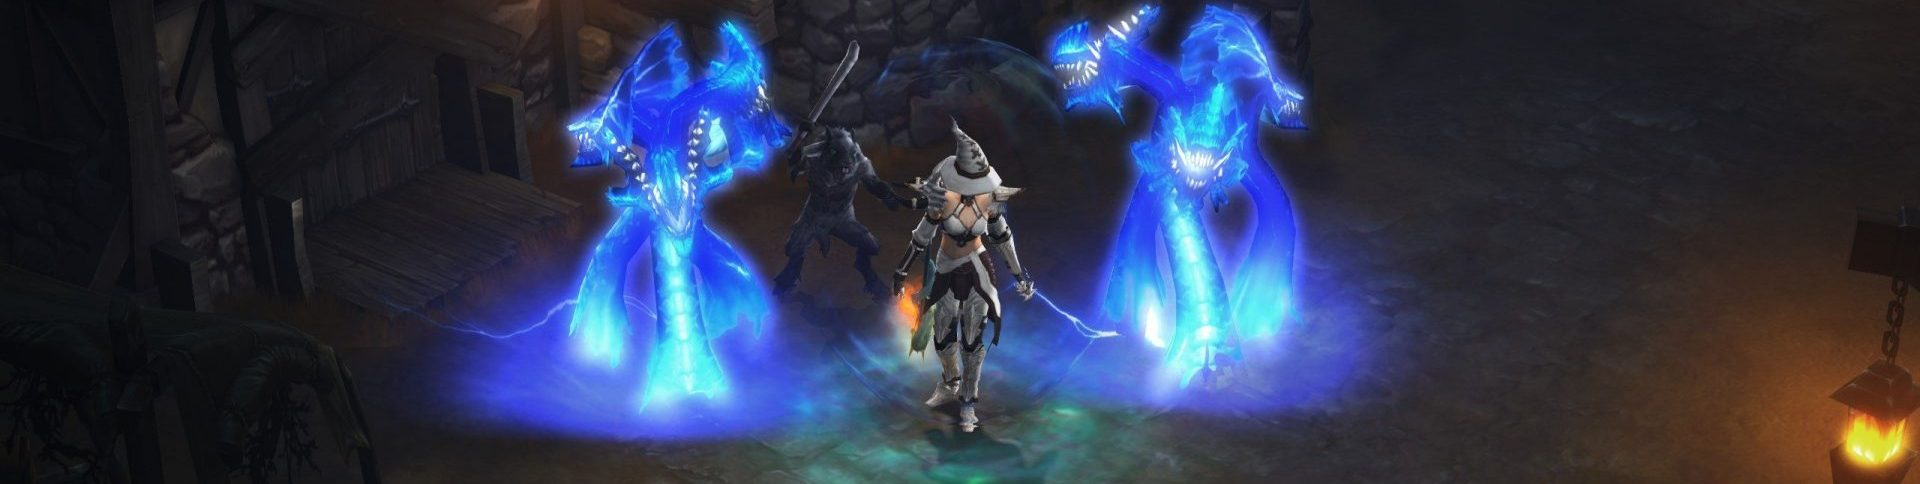 Diablo 3: RIP Gen Monk for Season 10, Hello Lightning-Hydra Wizard